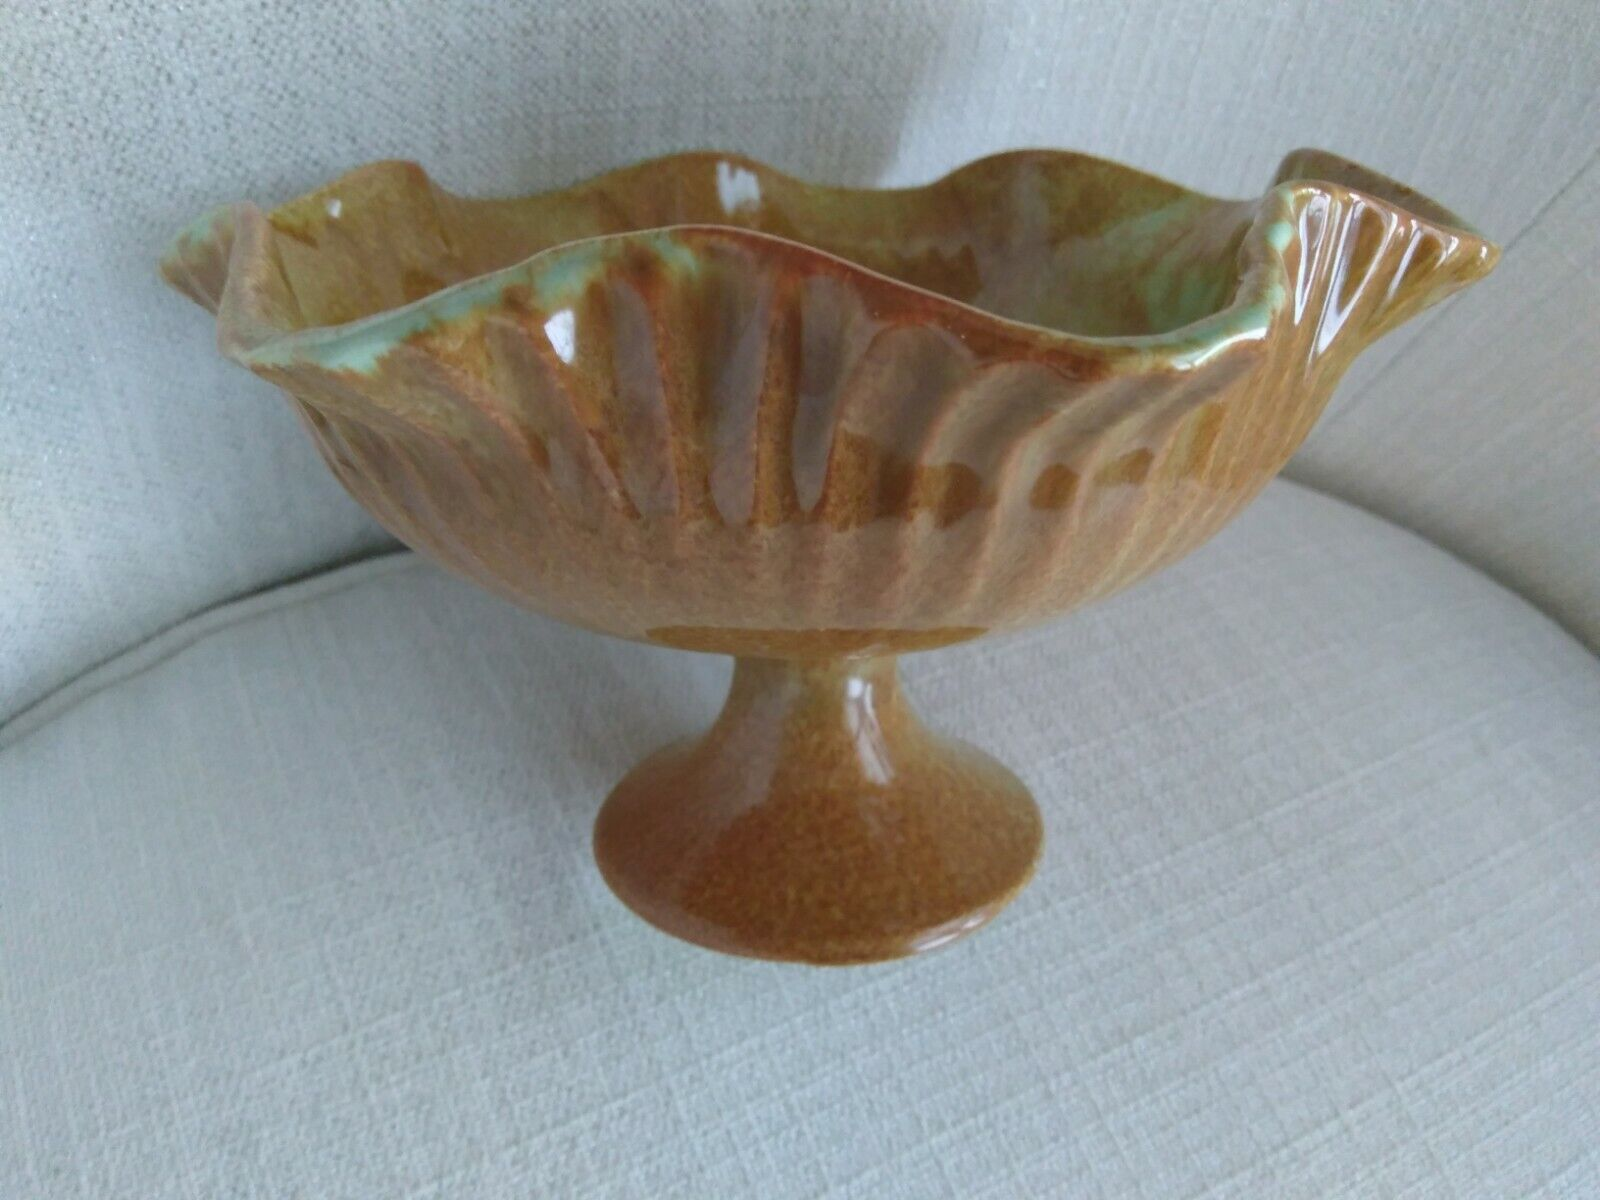 Red Wing Pottery Footed Ruffled Bowl, 7 Inch, Rust/green, 691 - $19.95